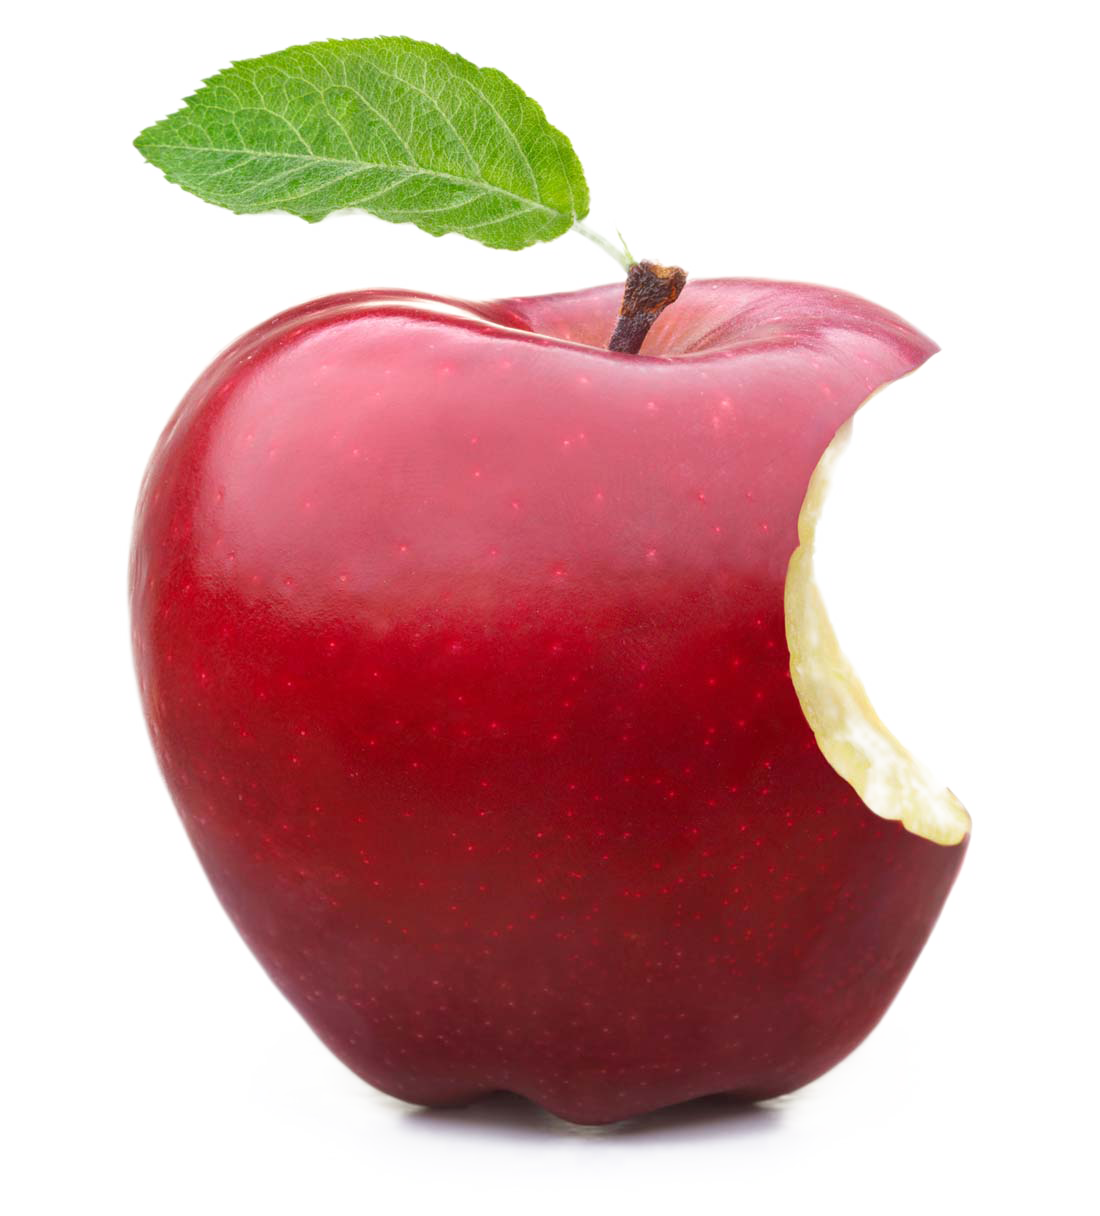 Apple Food Bite Shutterstock Crumble Fruit Red PNG Image